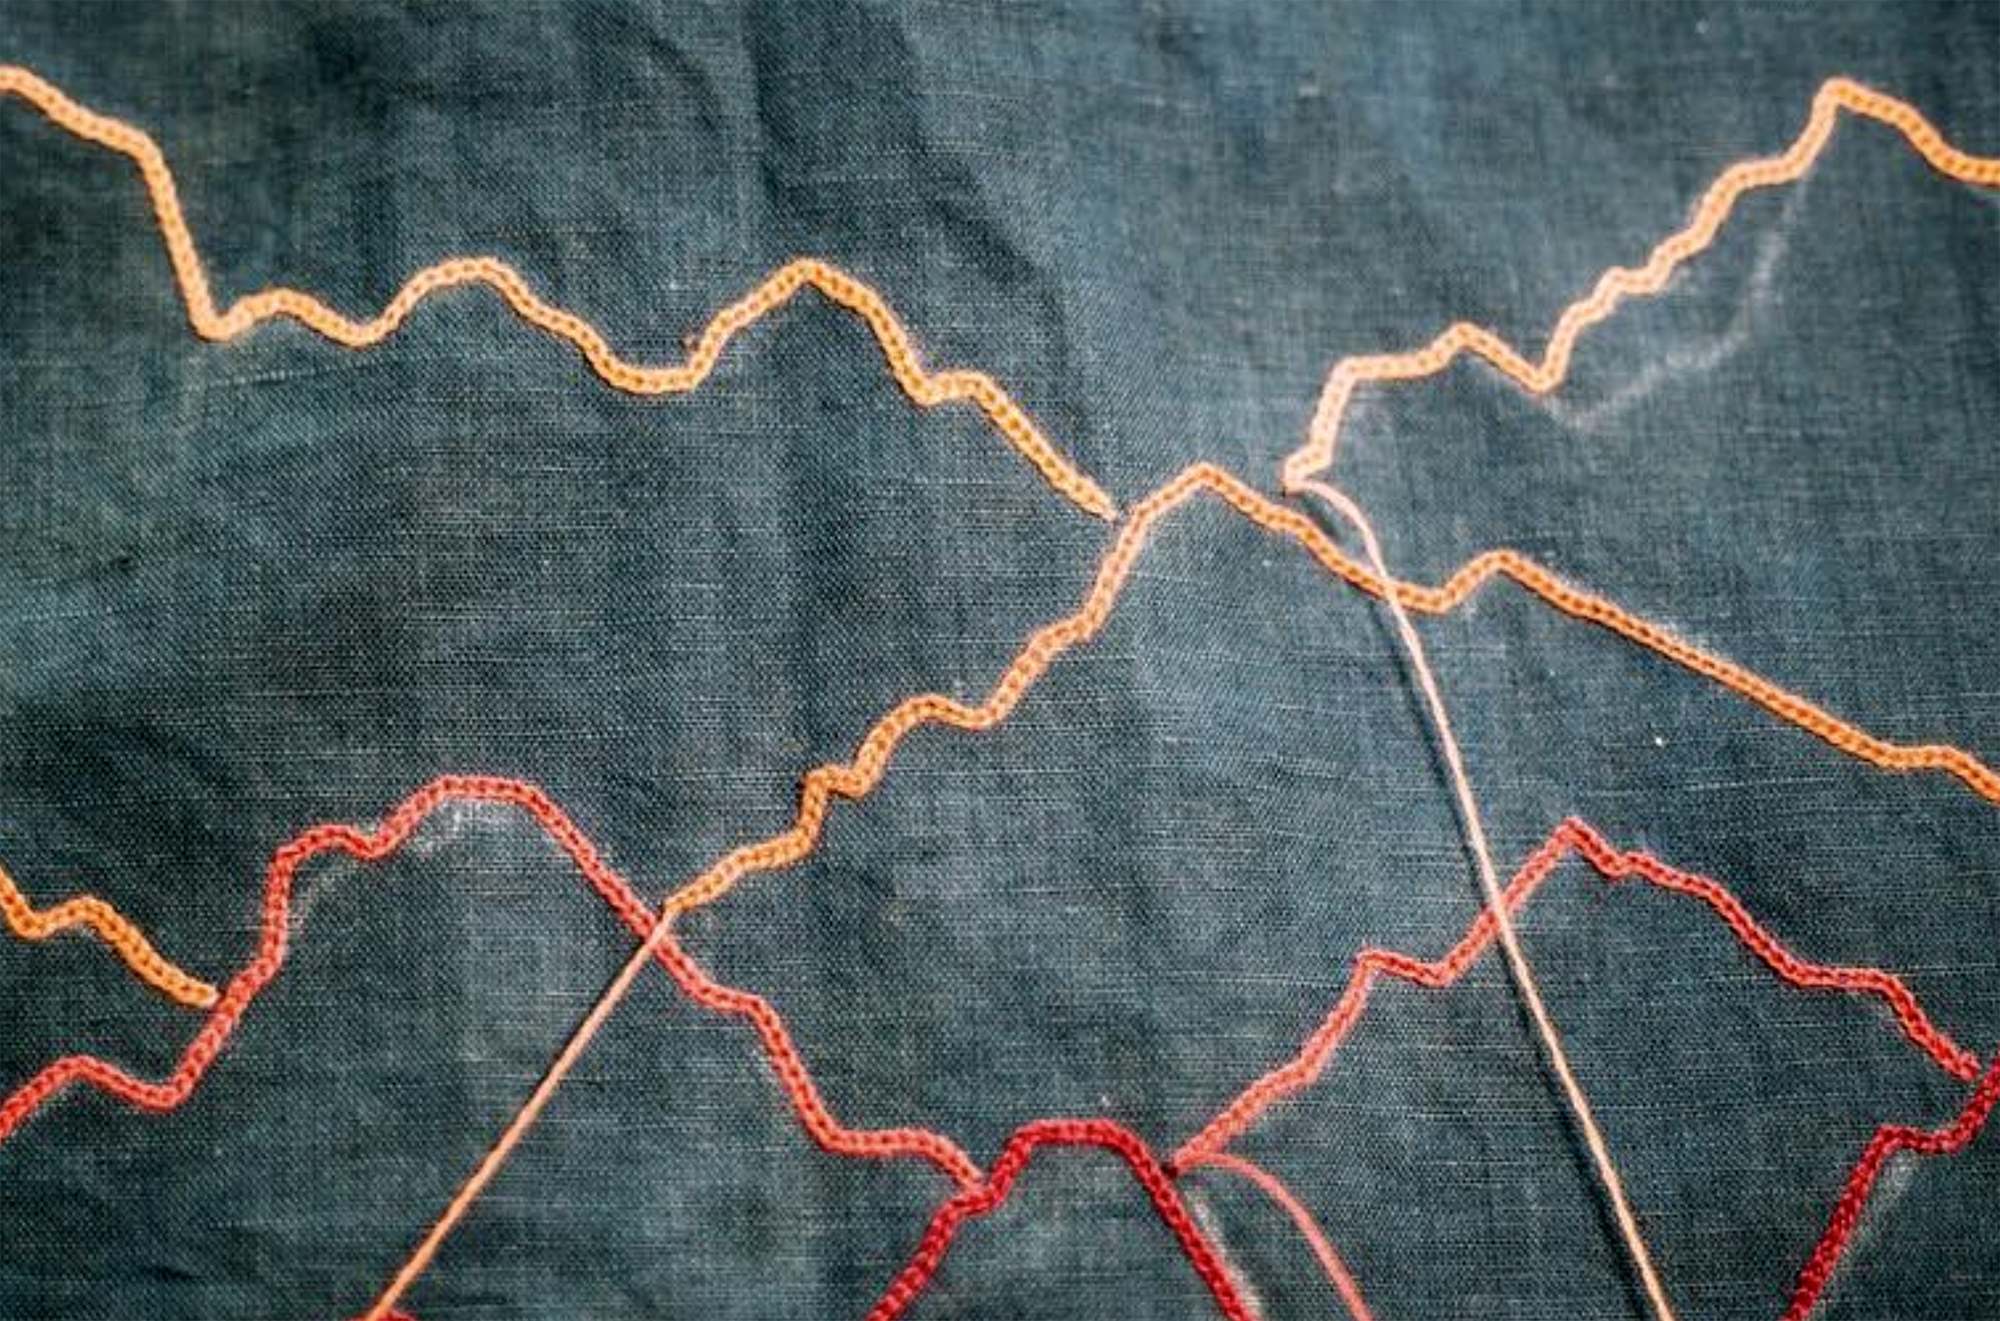 Detail shot of mountains stitched in colored embroidery thread.